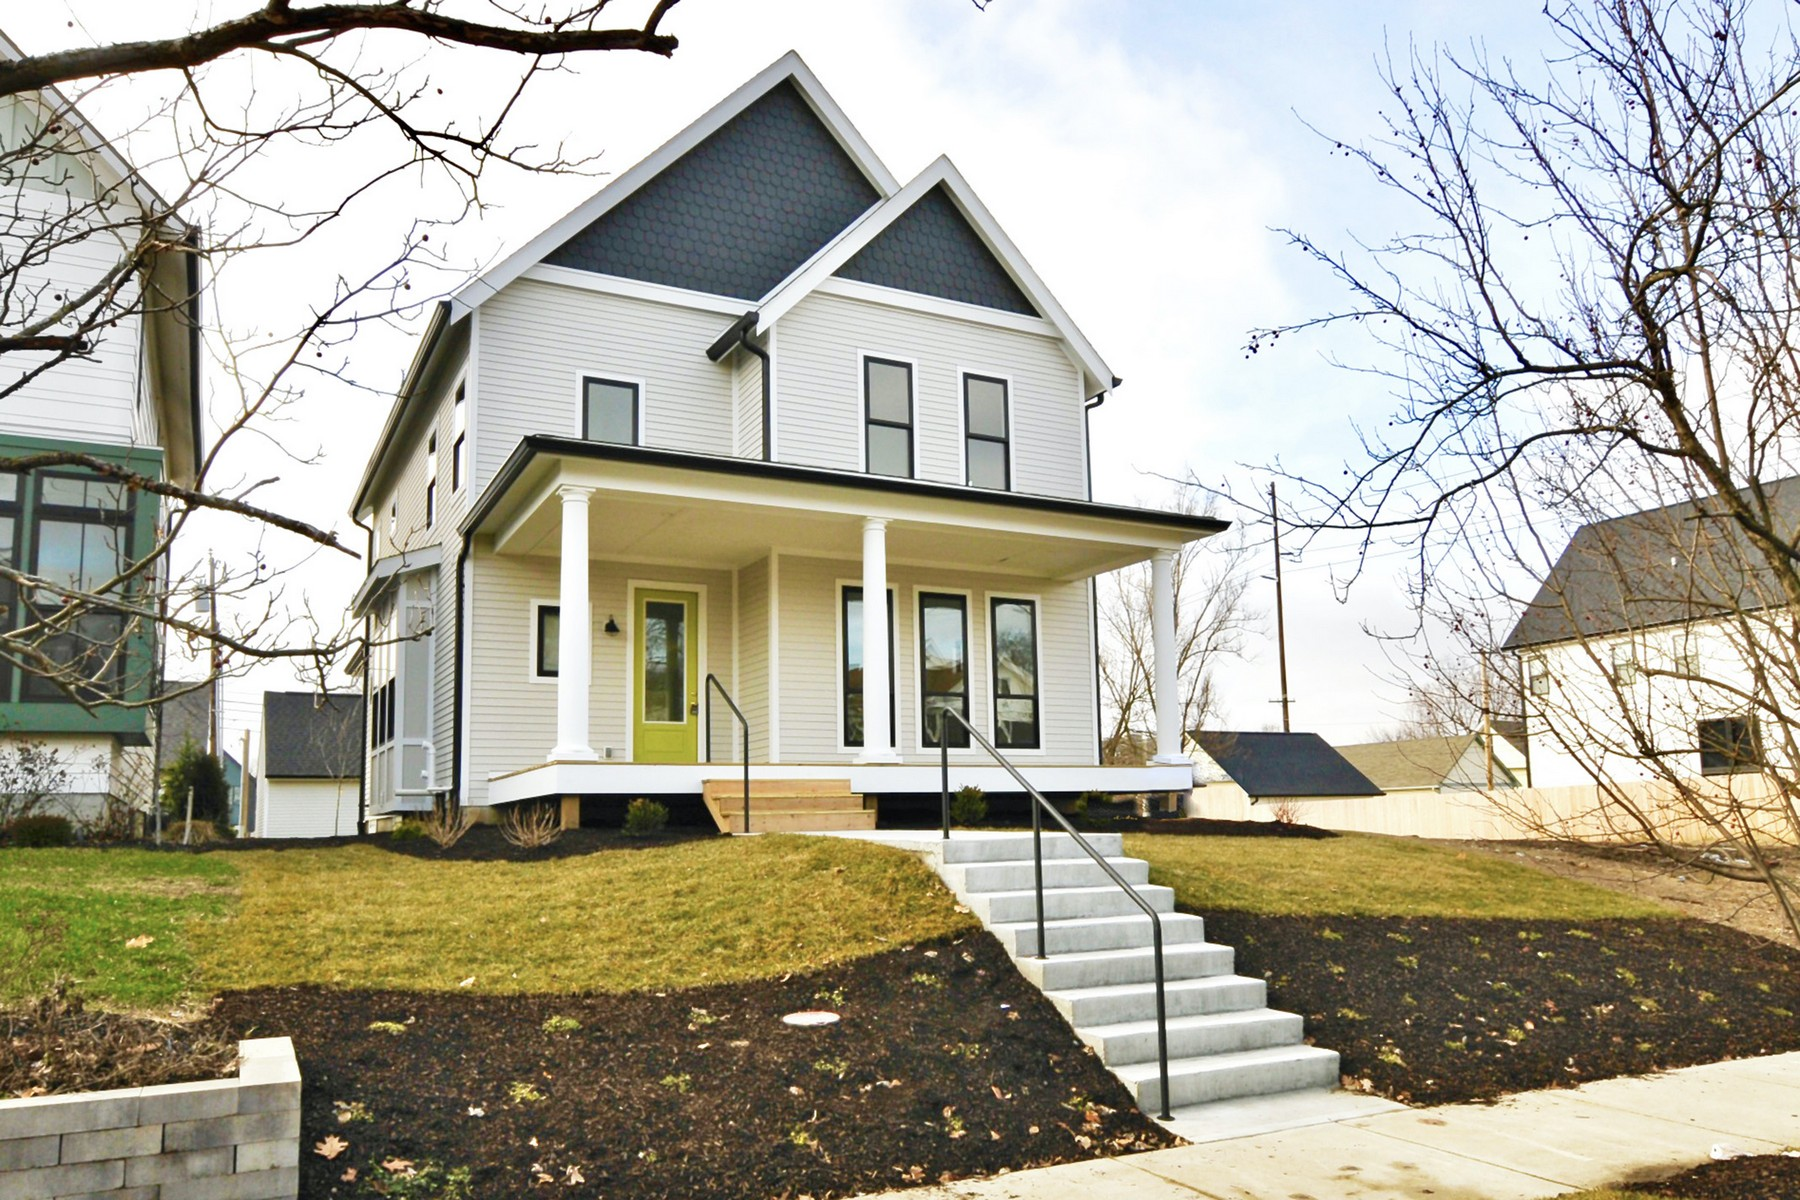 Single Family Homes for Active at New Build 2138 North New Jersey Street Indianapolis, Indiana 46202 United States